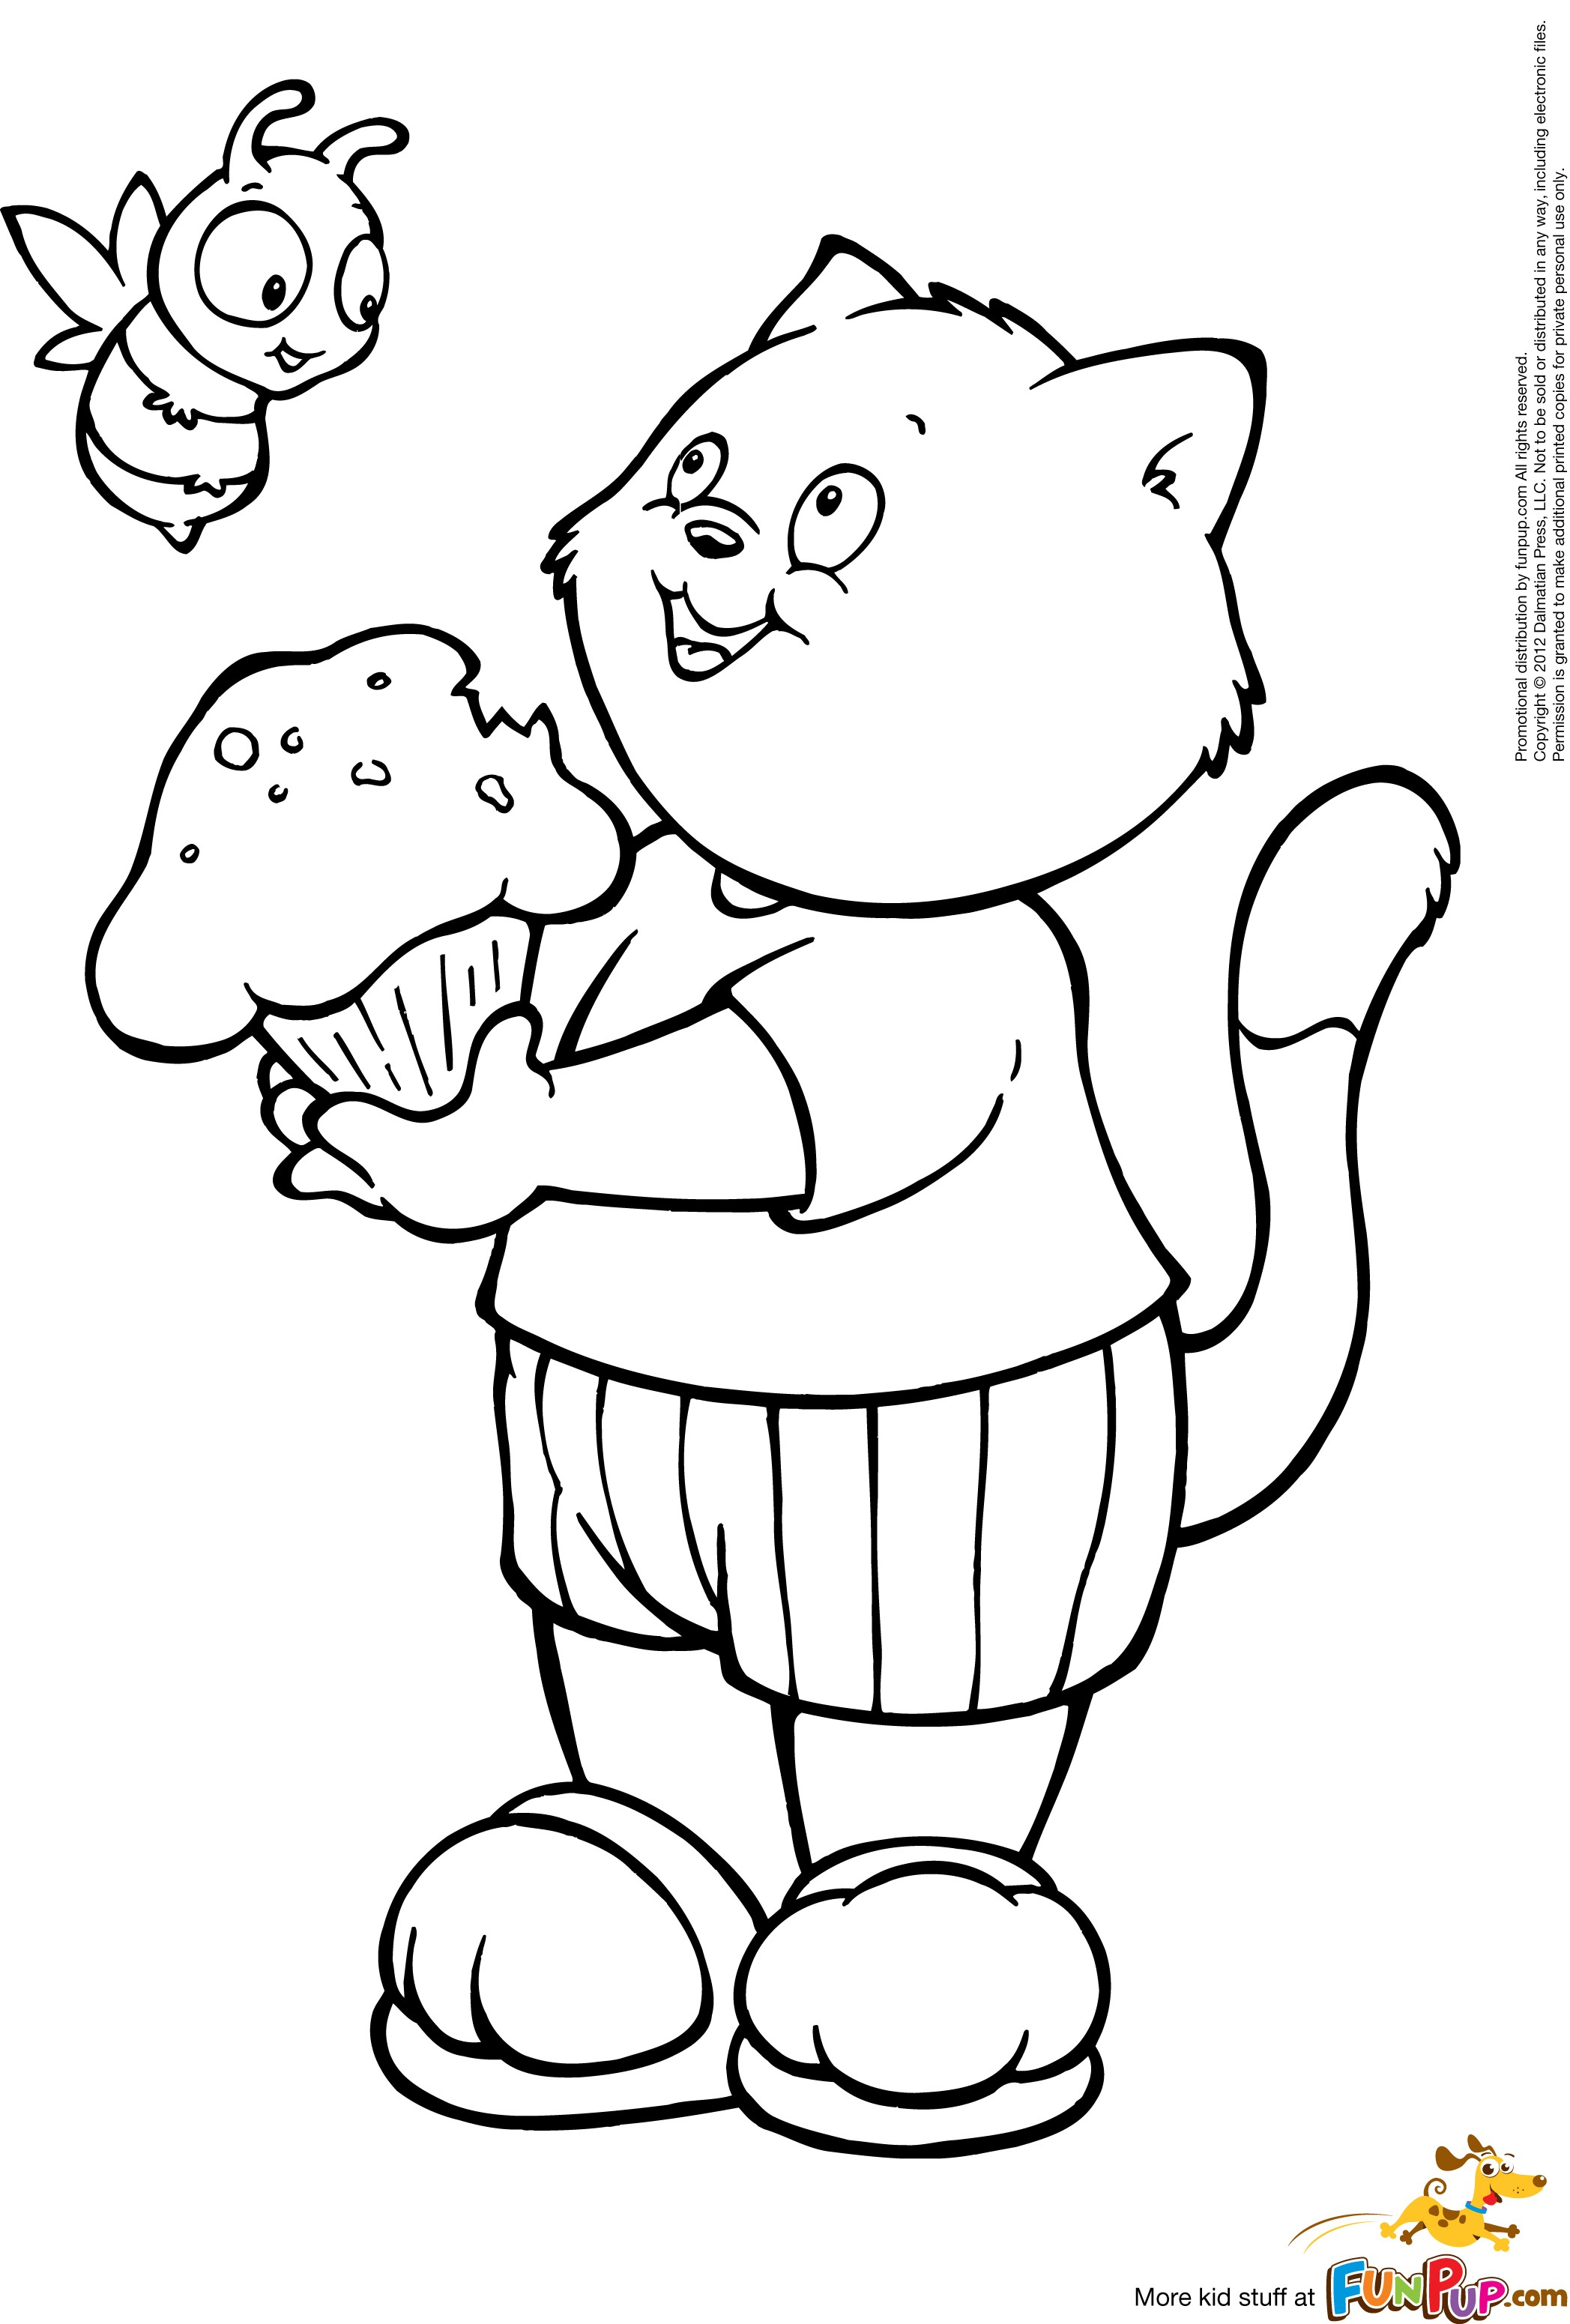 muffin pictures to color generic muffin b and w clip art at clkercom vector to pictures color muffin